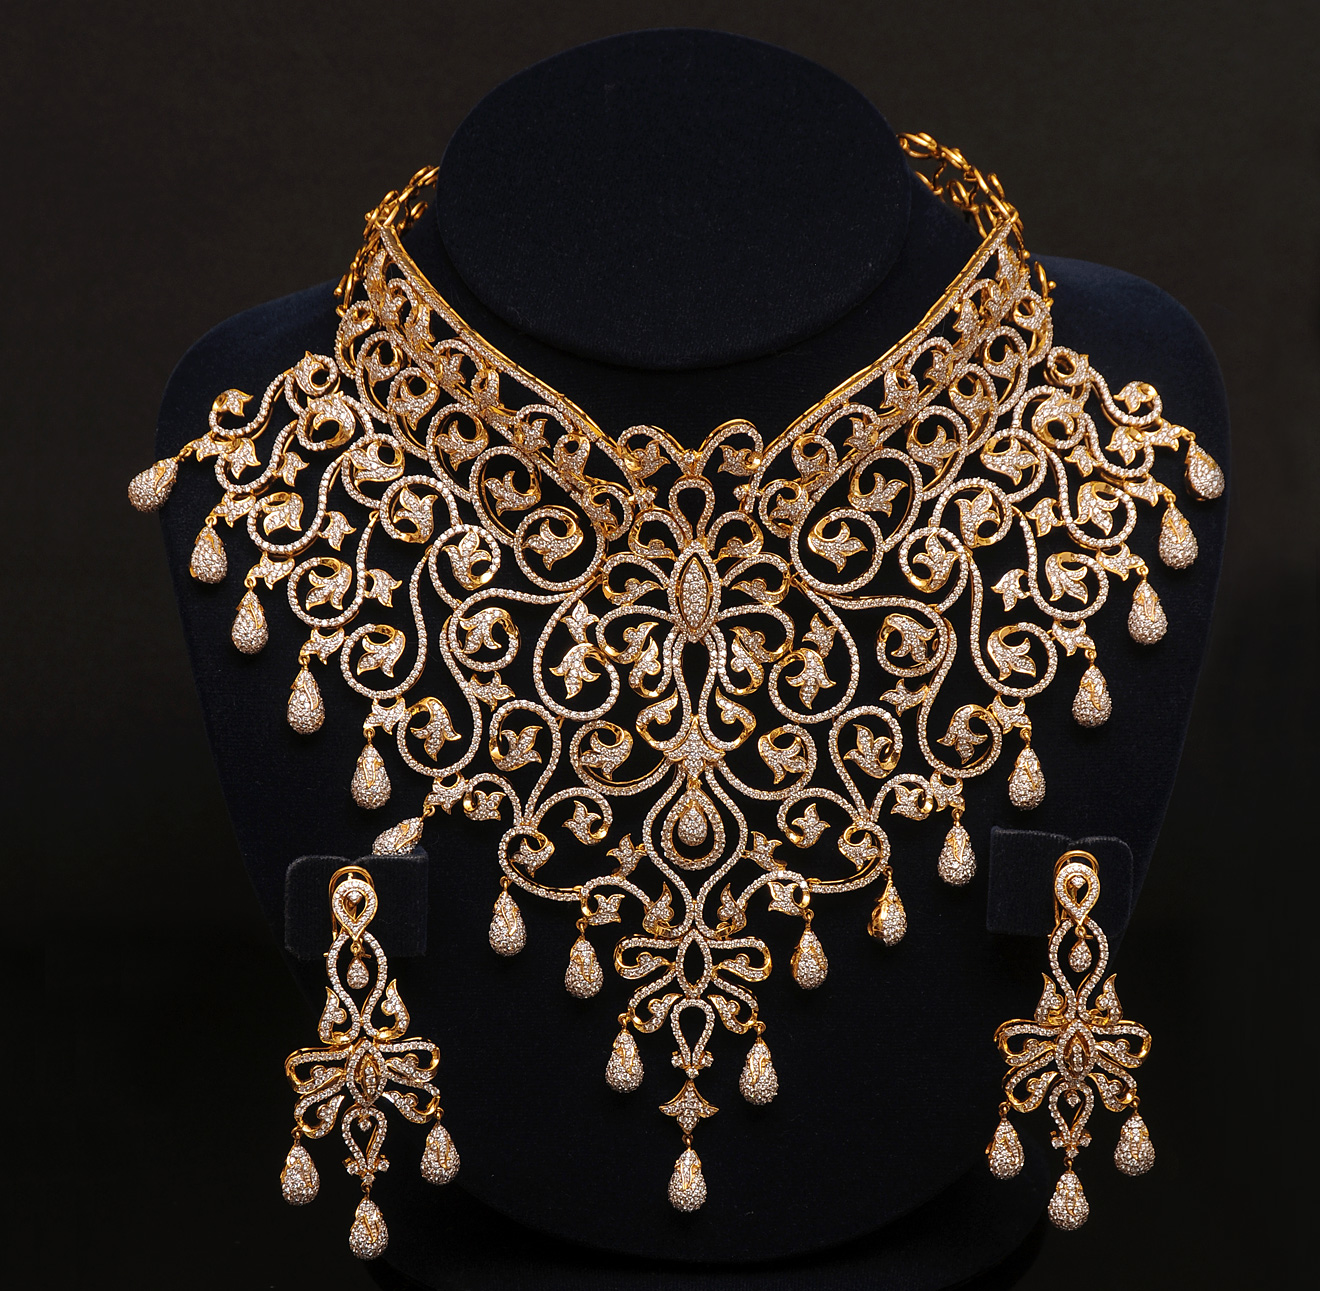 Gold And Diamond Jewellery Designs Indian Diamond Choker Bridal Set